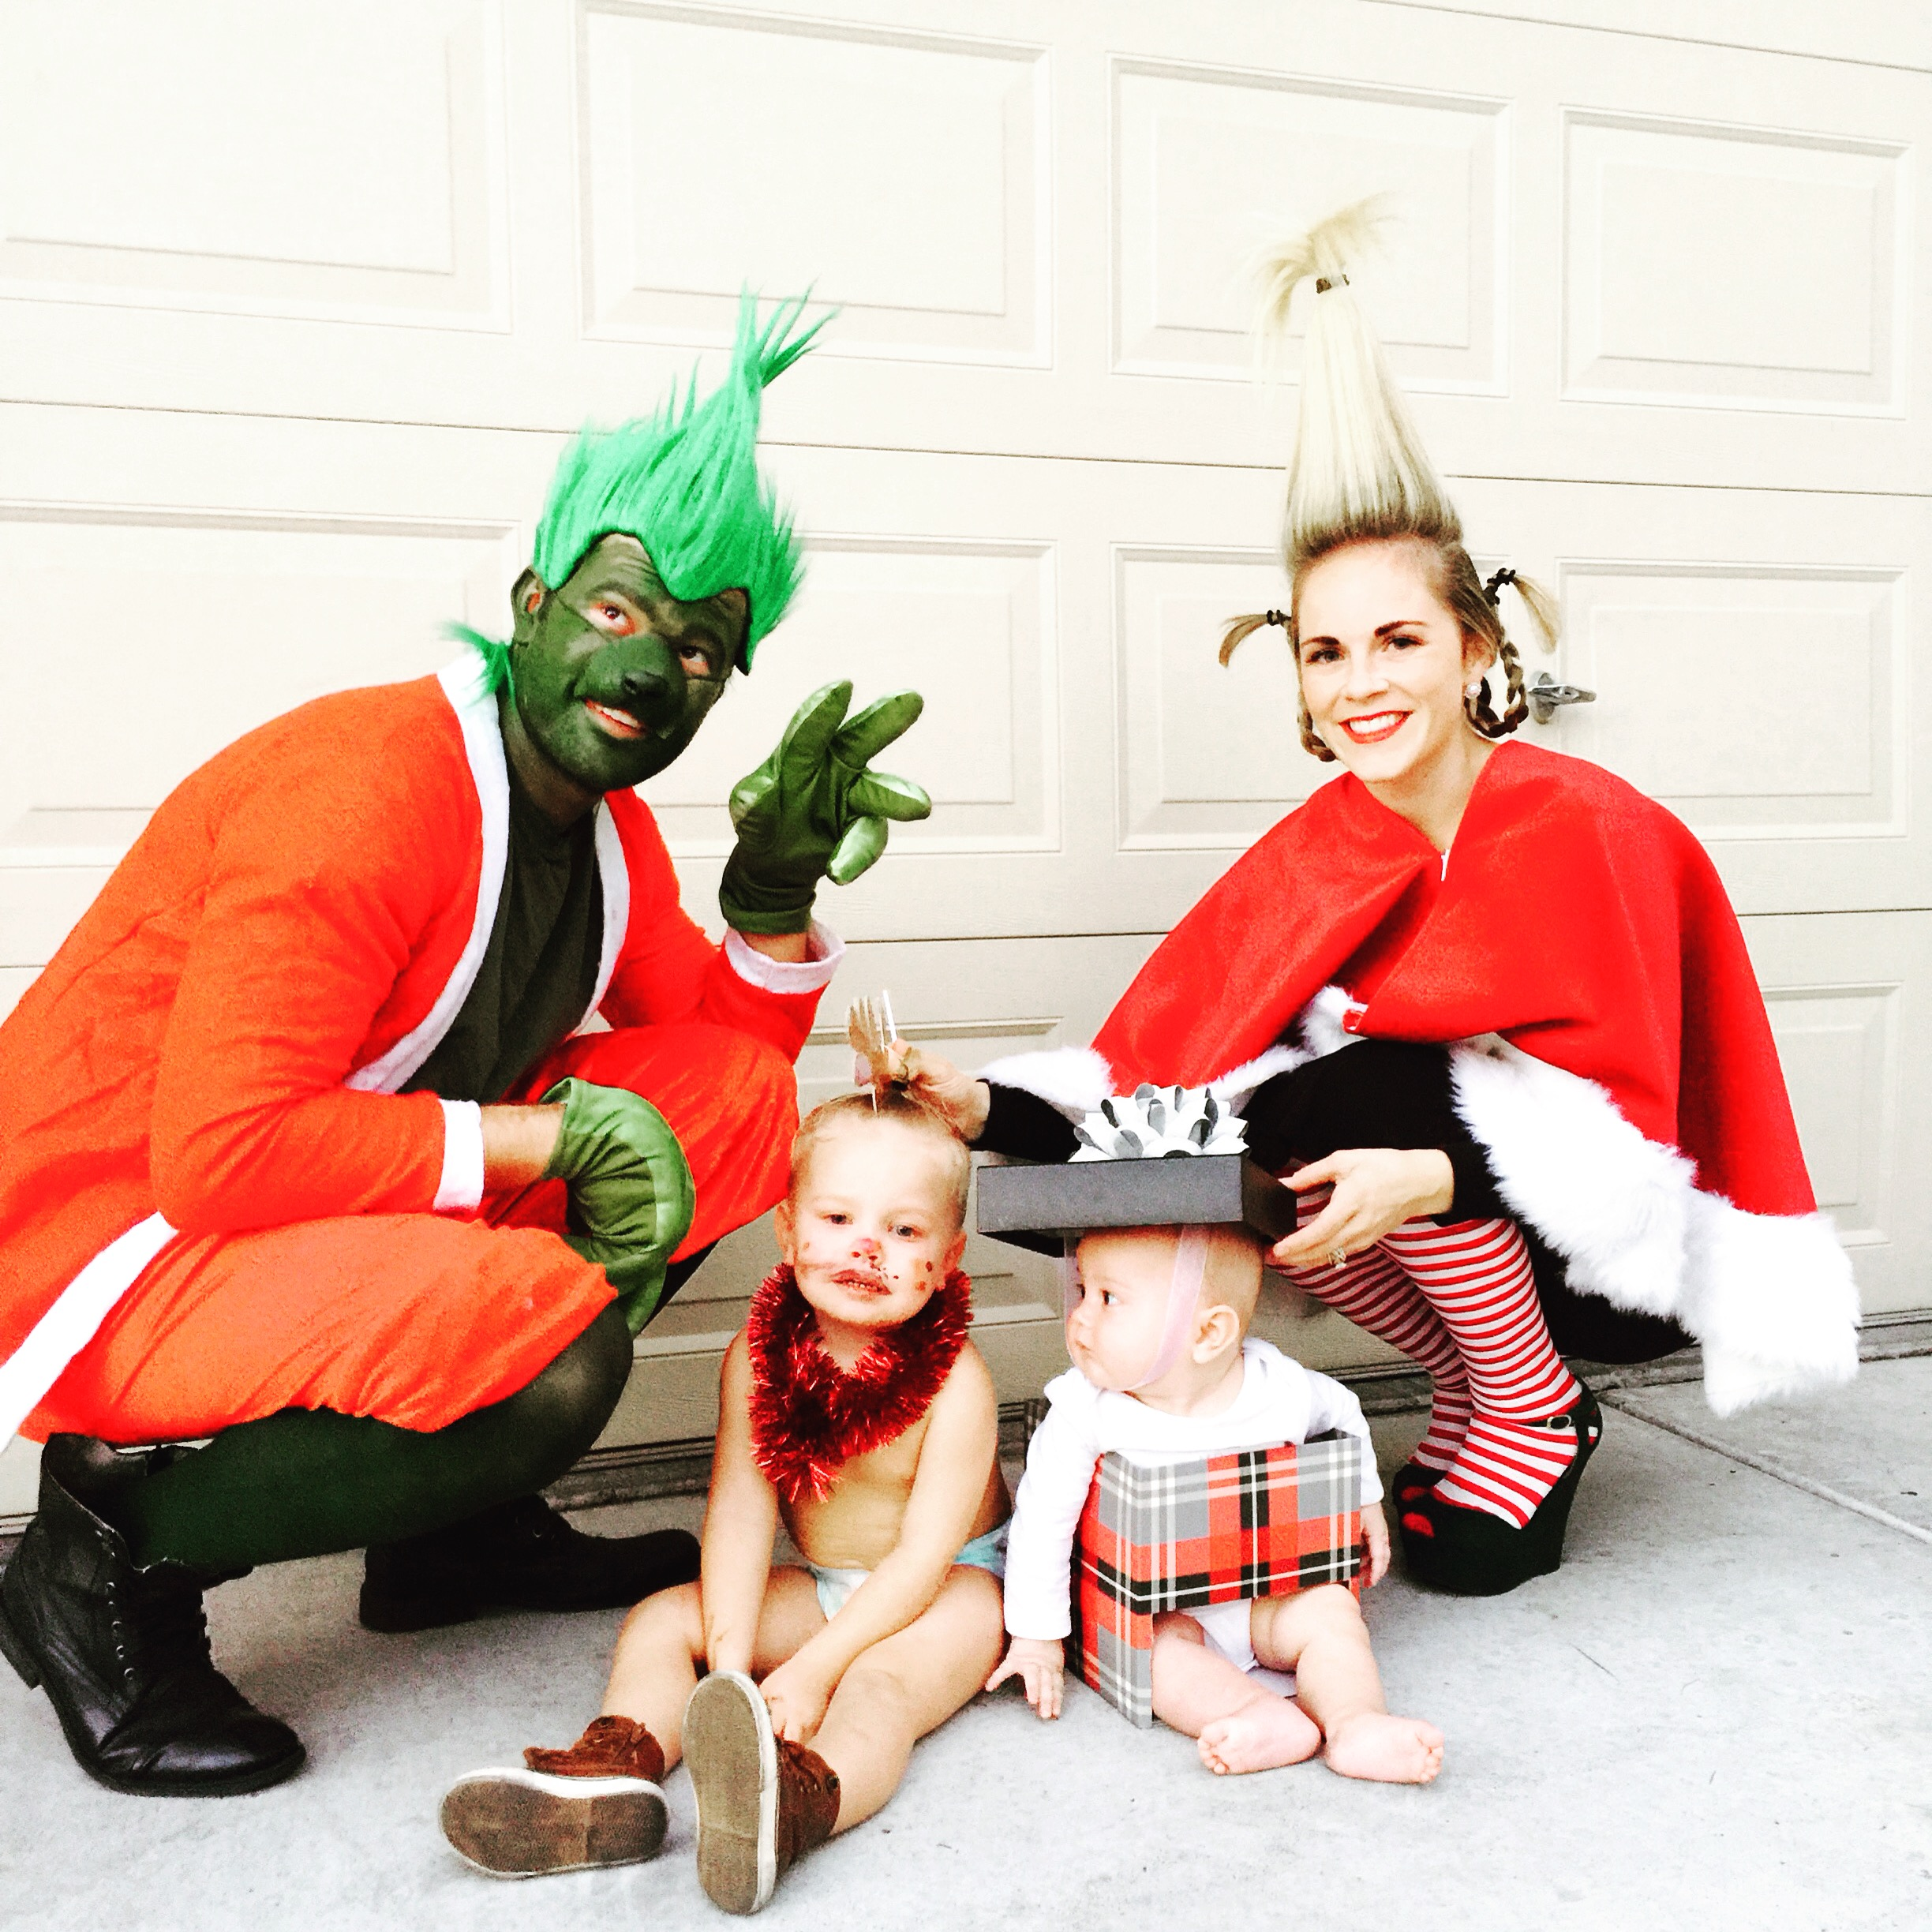 10 Adorably Awesome Halloween Costumes for Family, Kids, and Babies, including THE GRINCH, Cindy Lou Whoo, Max the dog, and a Present. Click through for plenty of fun DIY costumes for families. #halloween #halloweencostumeideas #familyhalloweencostume #familyhalloweencostumeideas | glitterinc.com | @glitterinc